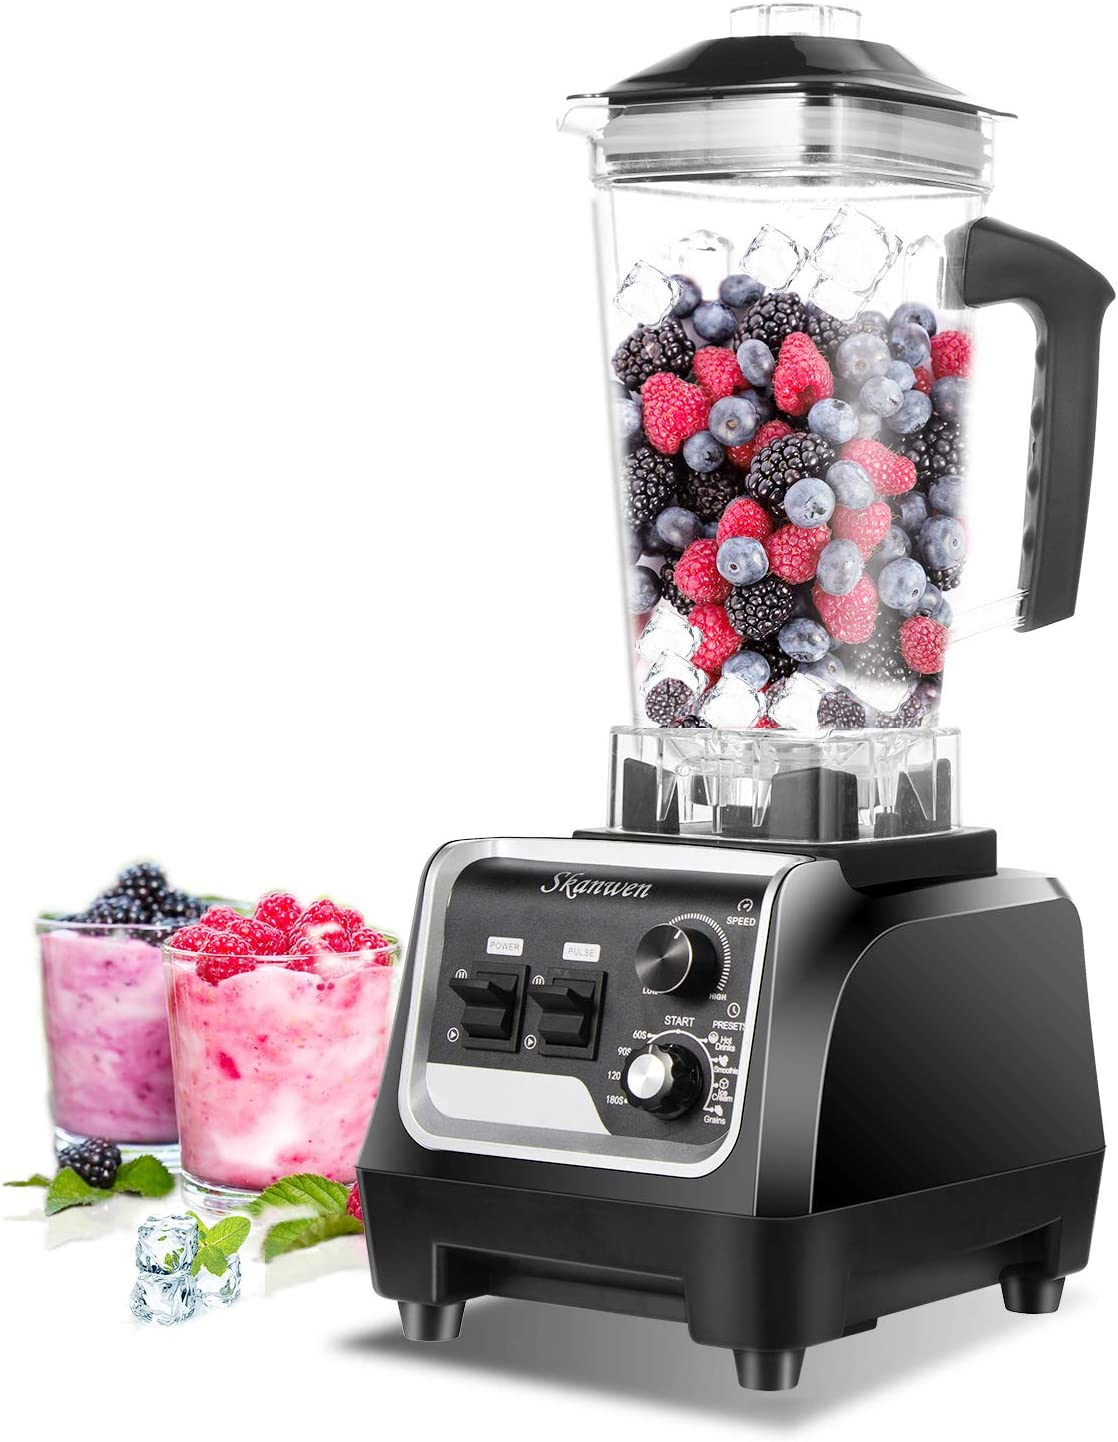 Professional Countertop Blender,SKANMEN 2200W High Speed Smoothie Blender, Commercial blender Crusing Ice ,Built-in Timer ,High Power Blender 2L Cups for Frozen Drinks ,Shakes and Smoothies